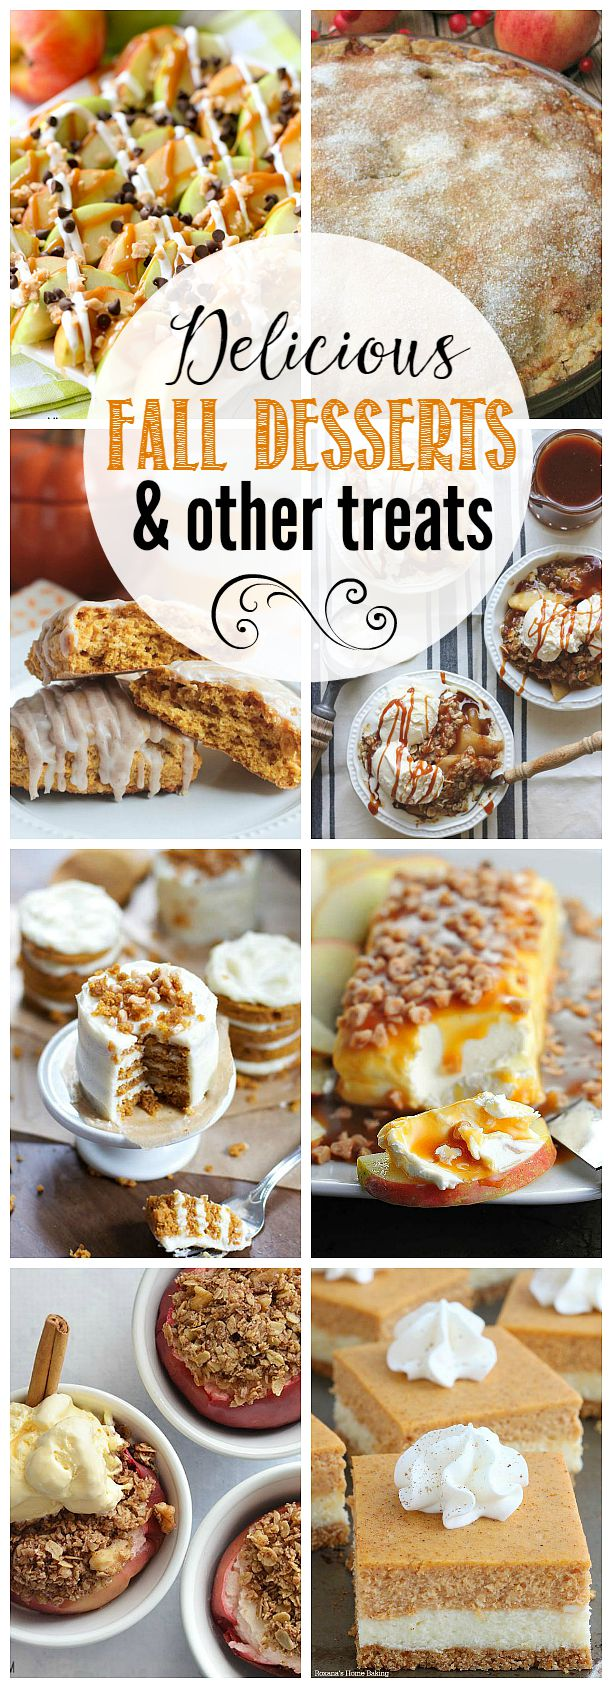 Delicious collection of fall dessert recipes. I love the apples, pumpkin spice, and other tastes of fall!